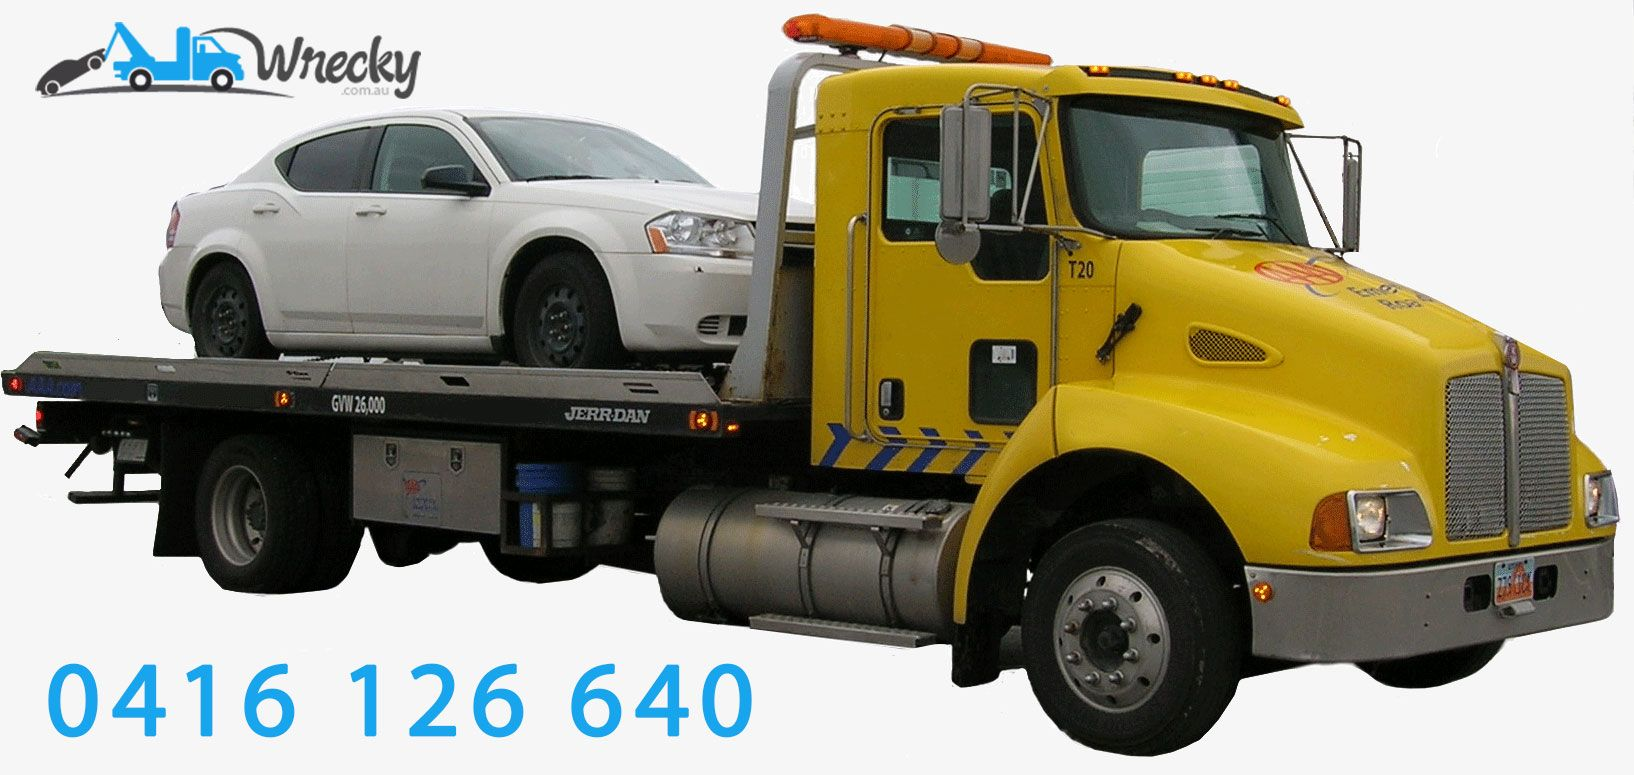 Pin by Wrecky on Cash for Cars Towing service, Towing